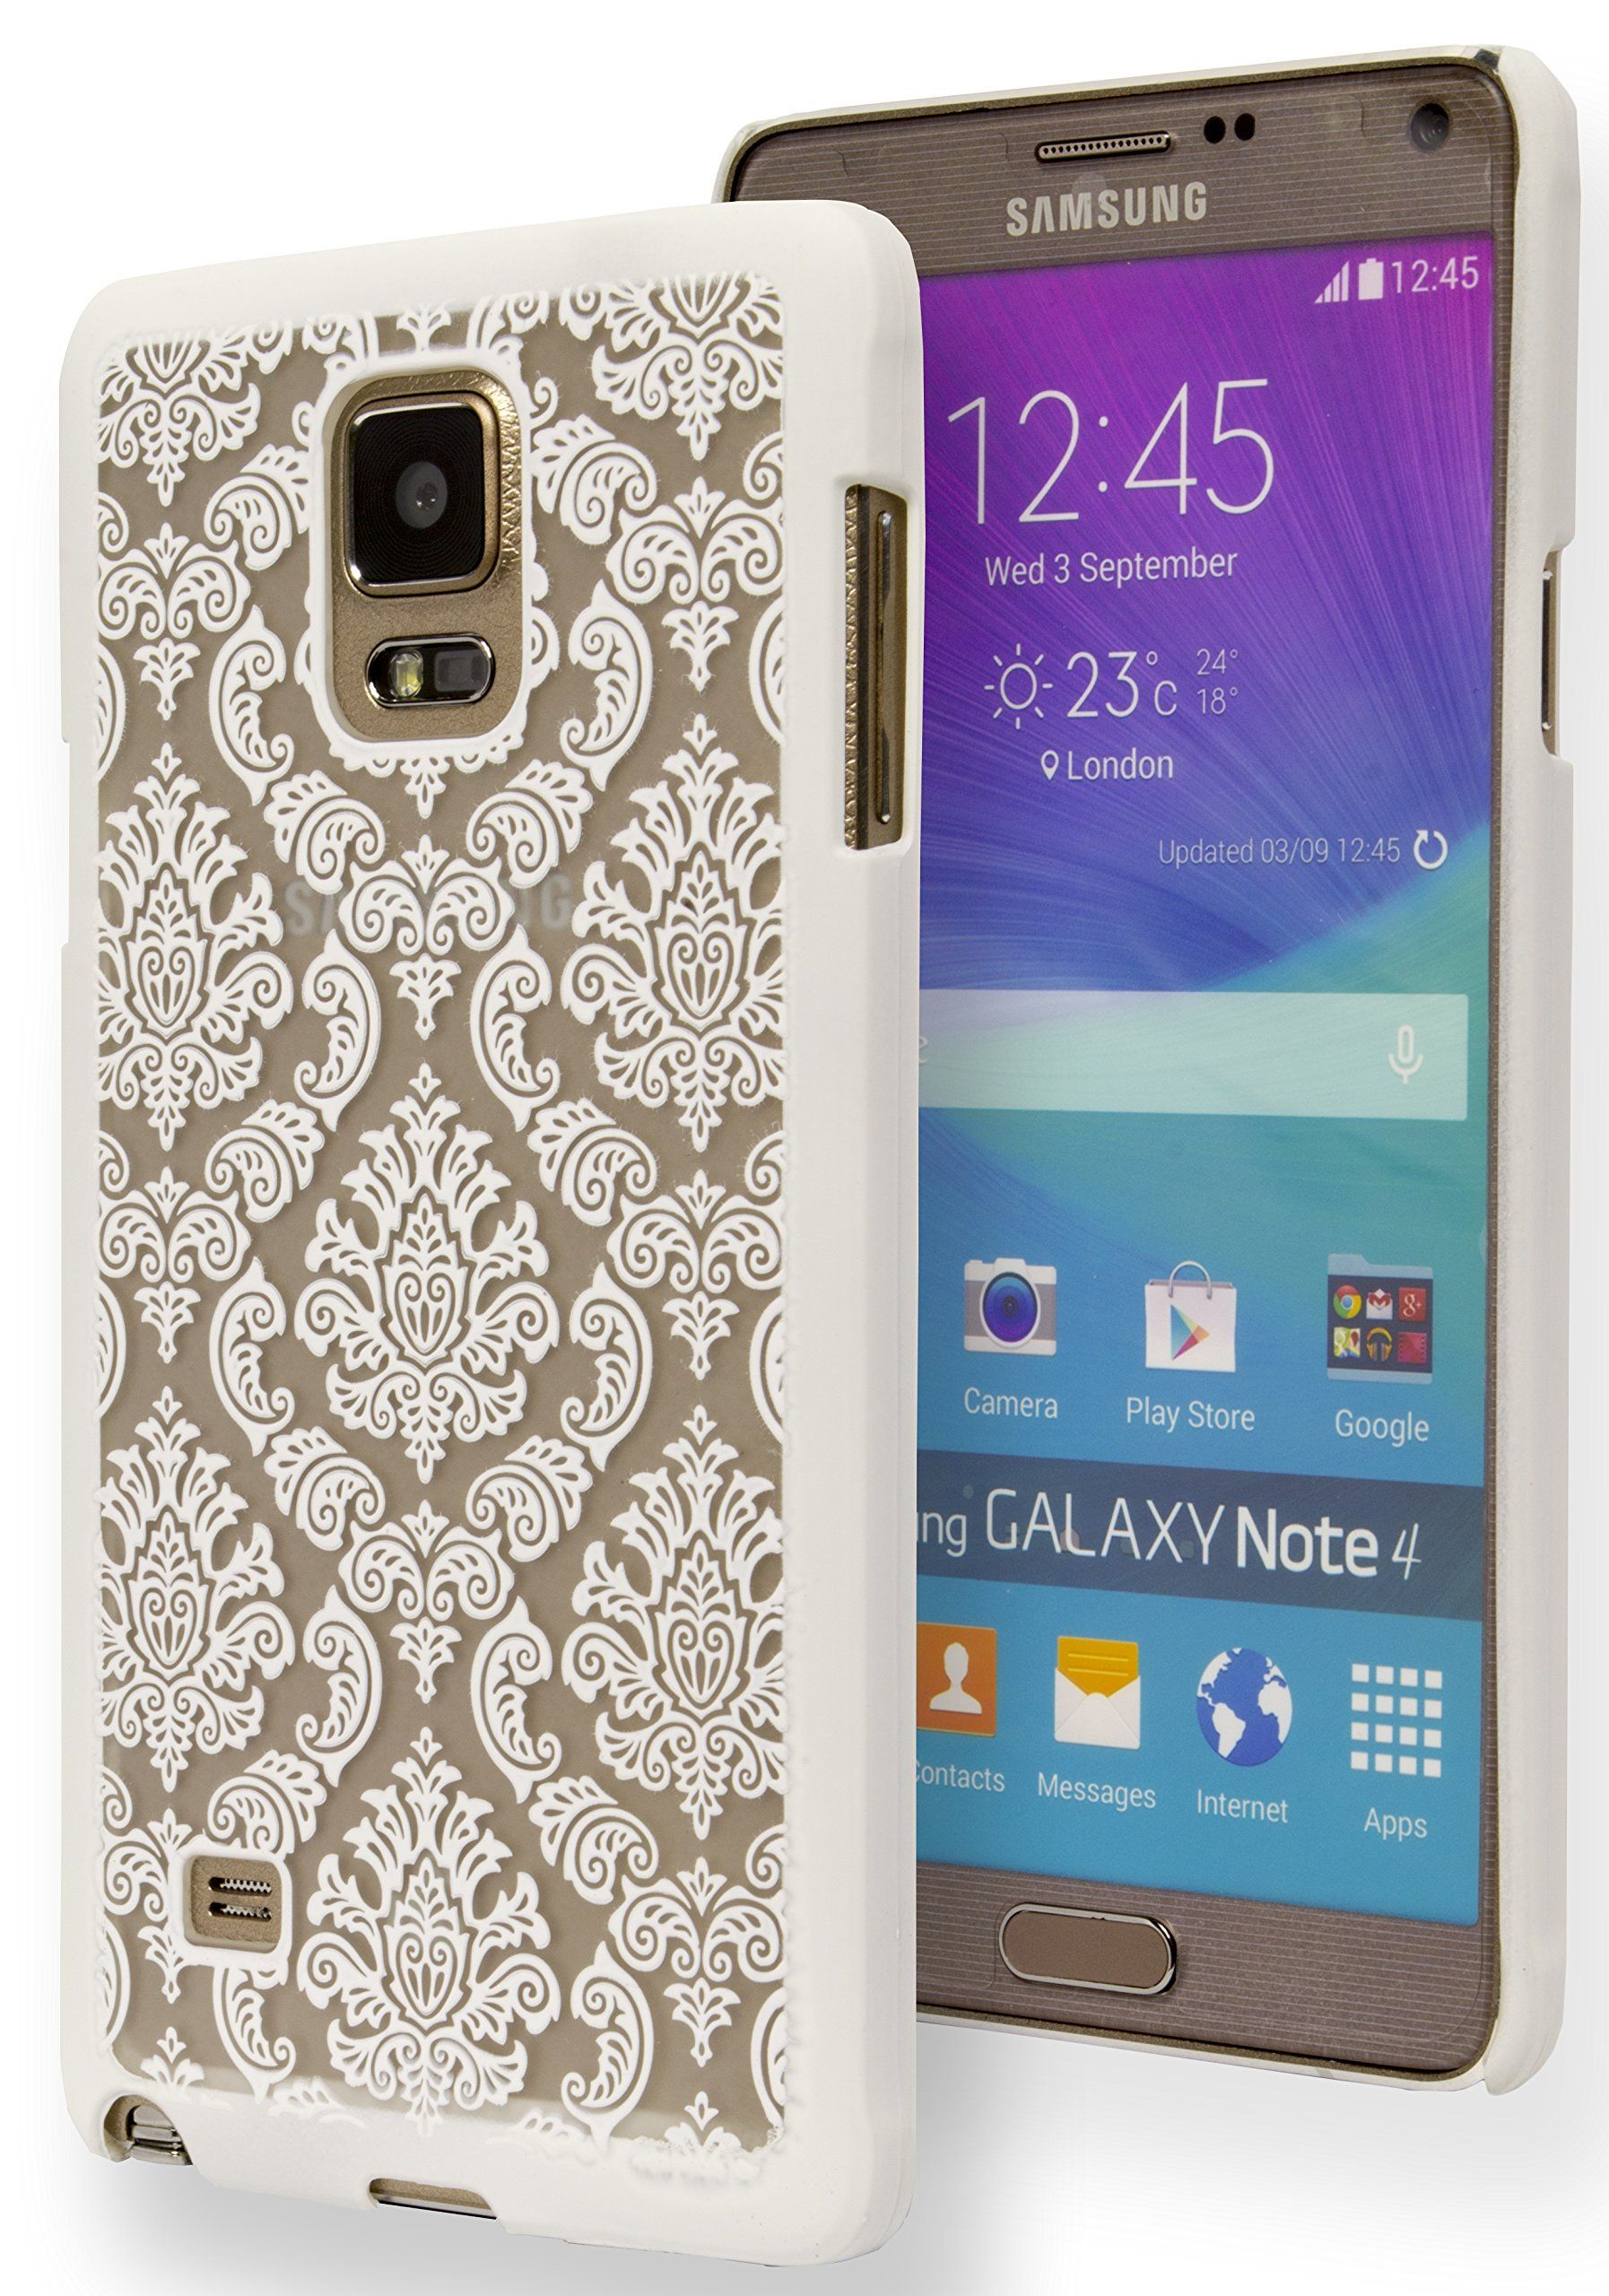 78b1535aea3 Elegant Samsung Galaxy Note 4 Case Amazon.com: Galaxy Note 4 Phone Case,